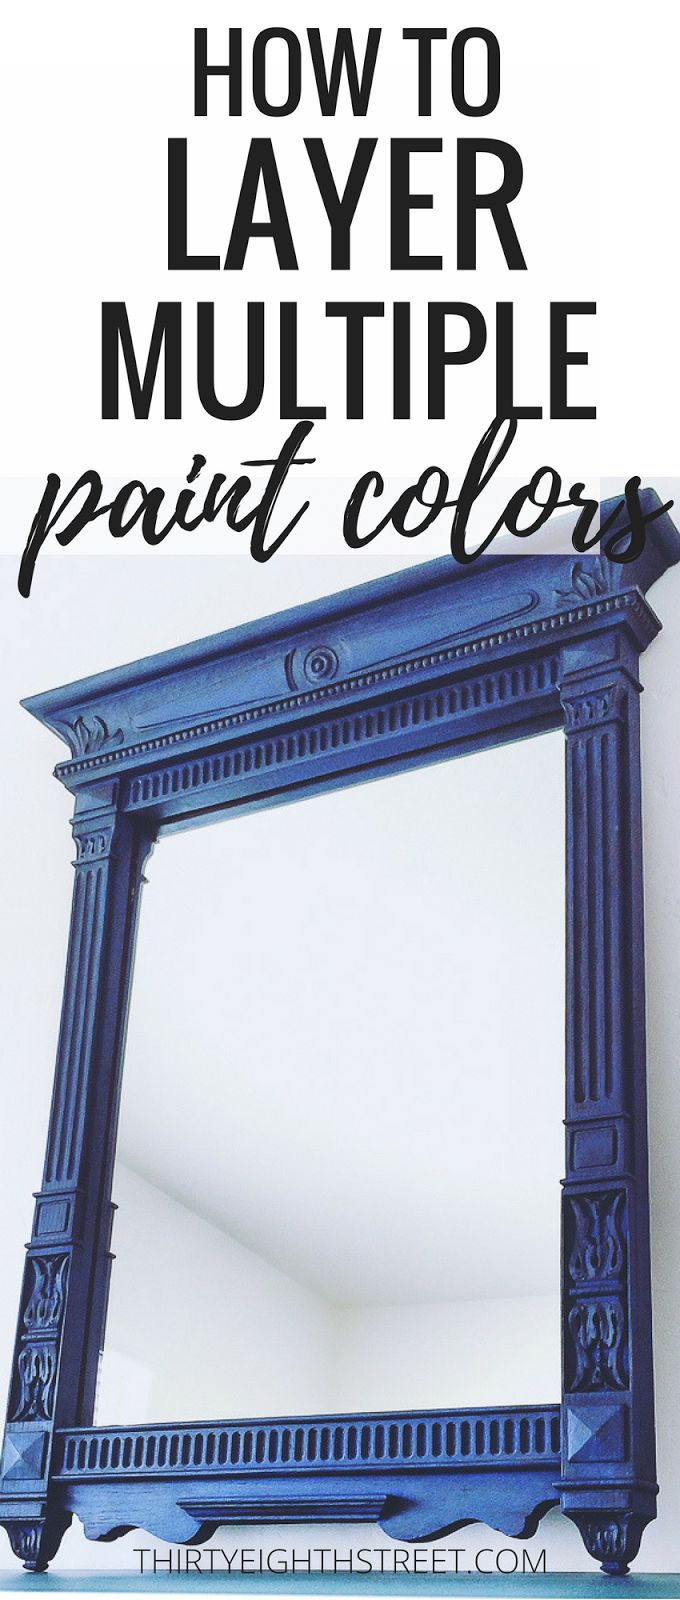 Furniture Painting Technique- How To Get A Layered Paint Finish. Learn How To Layer Chalk Paint Colors On This GORGEOUS Blue Painted Mirror. Beautiful Site filled with TONS of furniture makeovers, painted furniture ideas, and furniture painting techniques!! #thirtyeighthstreet #paintedfurniture